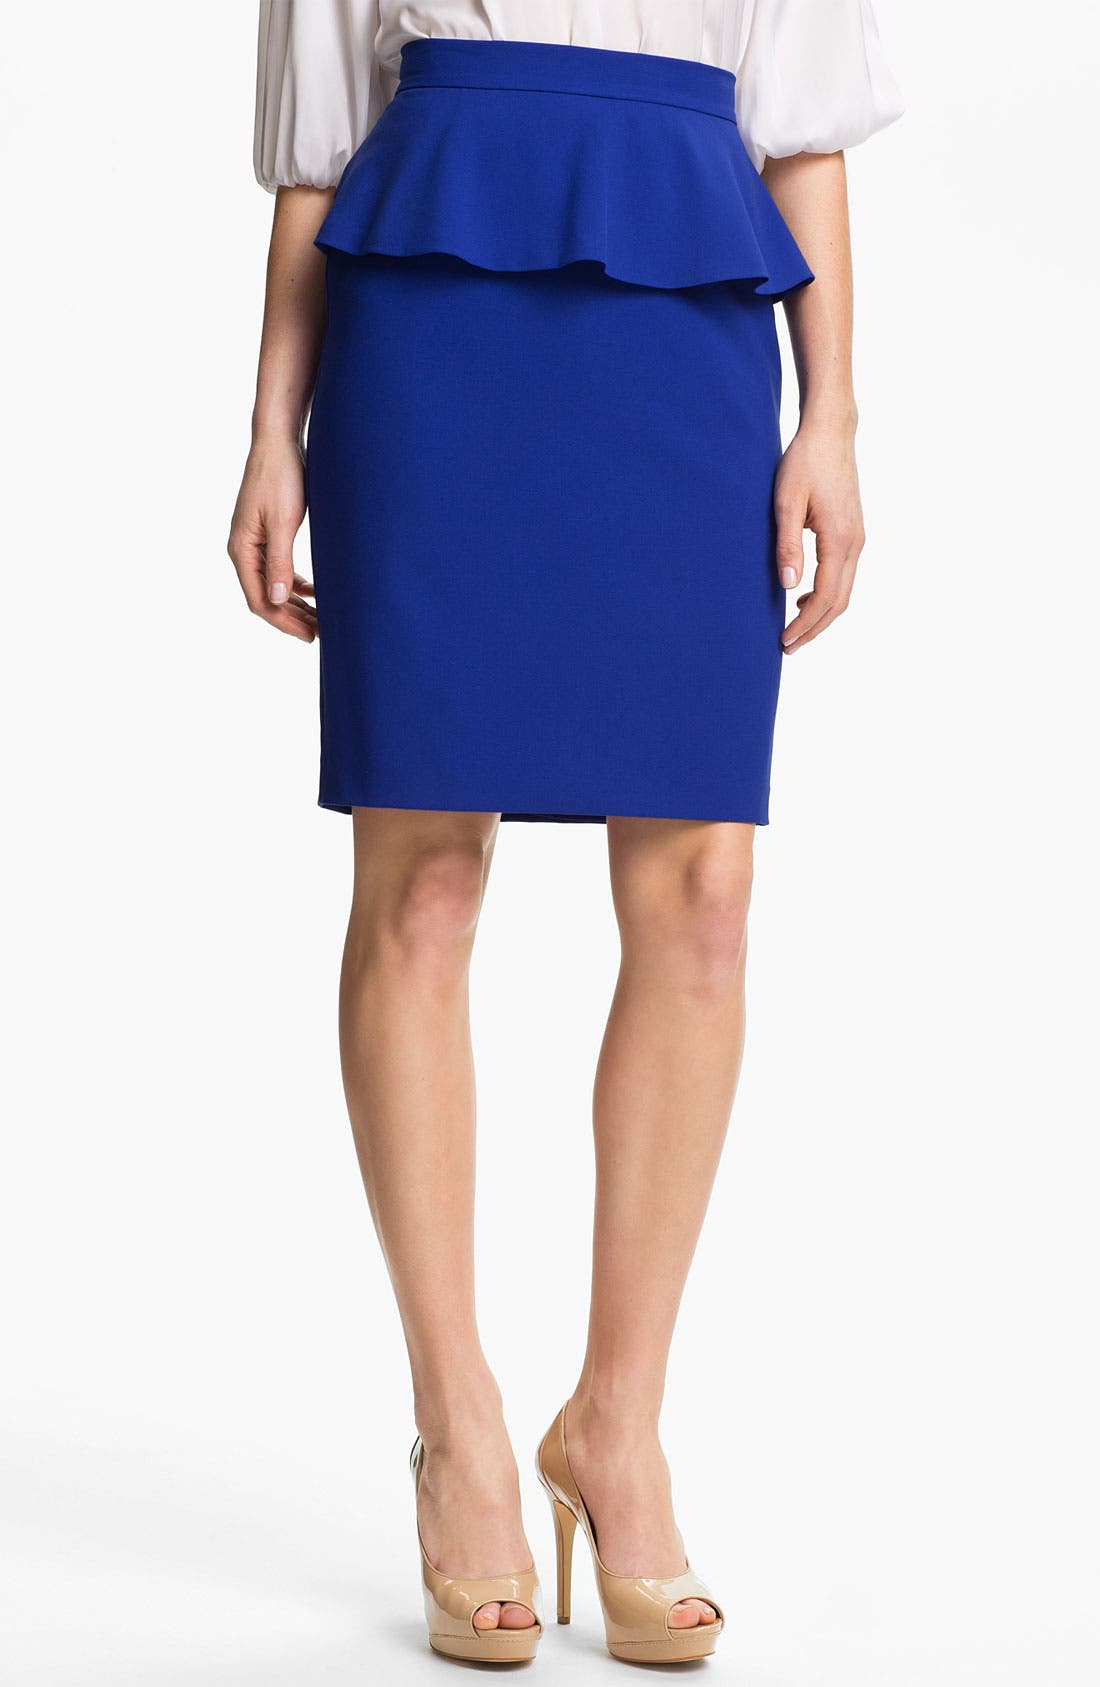 Alternate Image 1 Selected - Vince Camuto Peplum Pencil Skirt